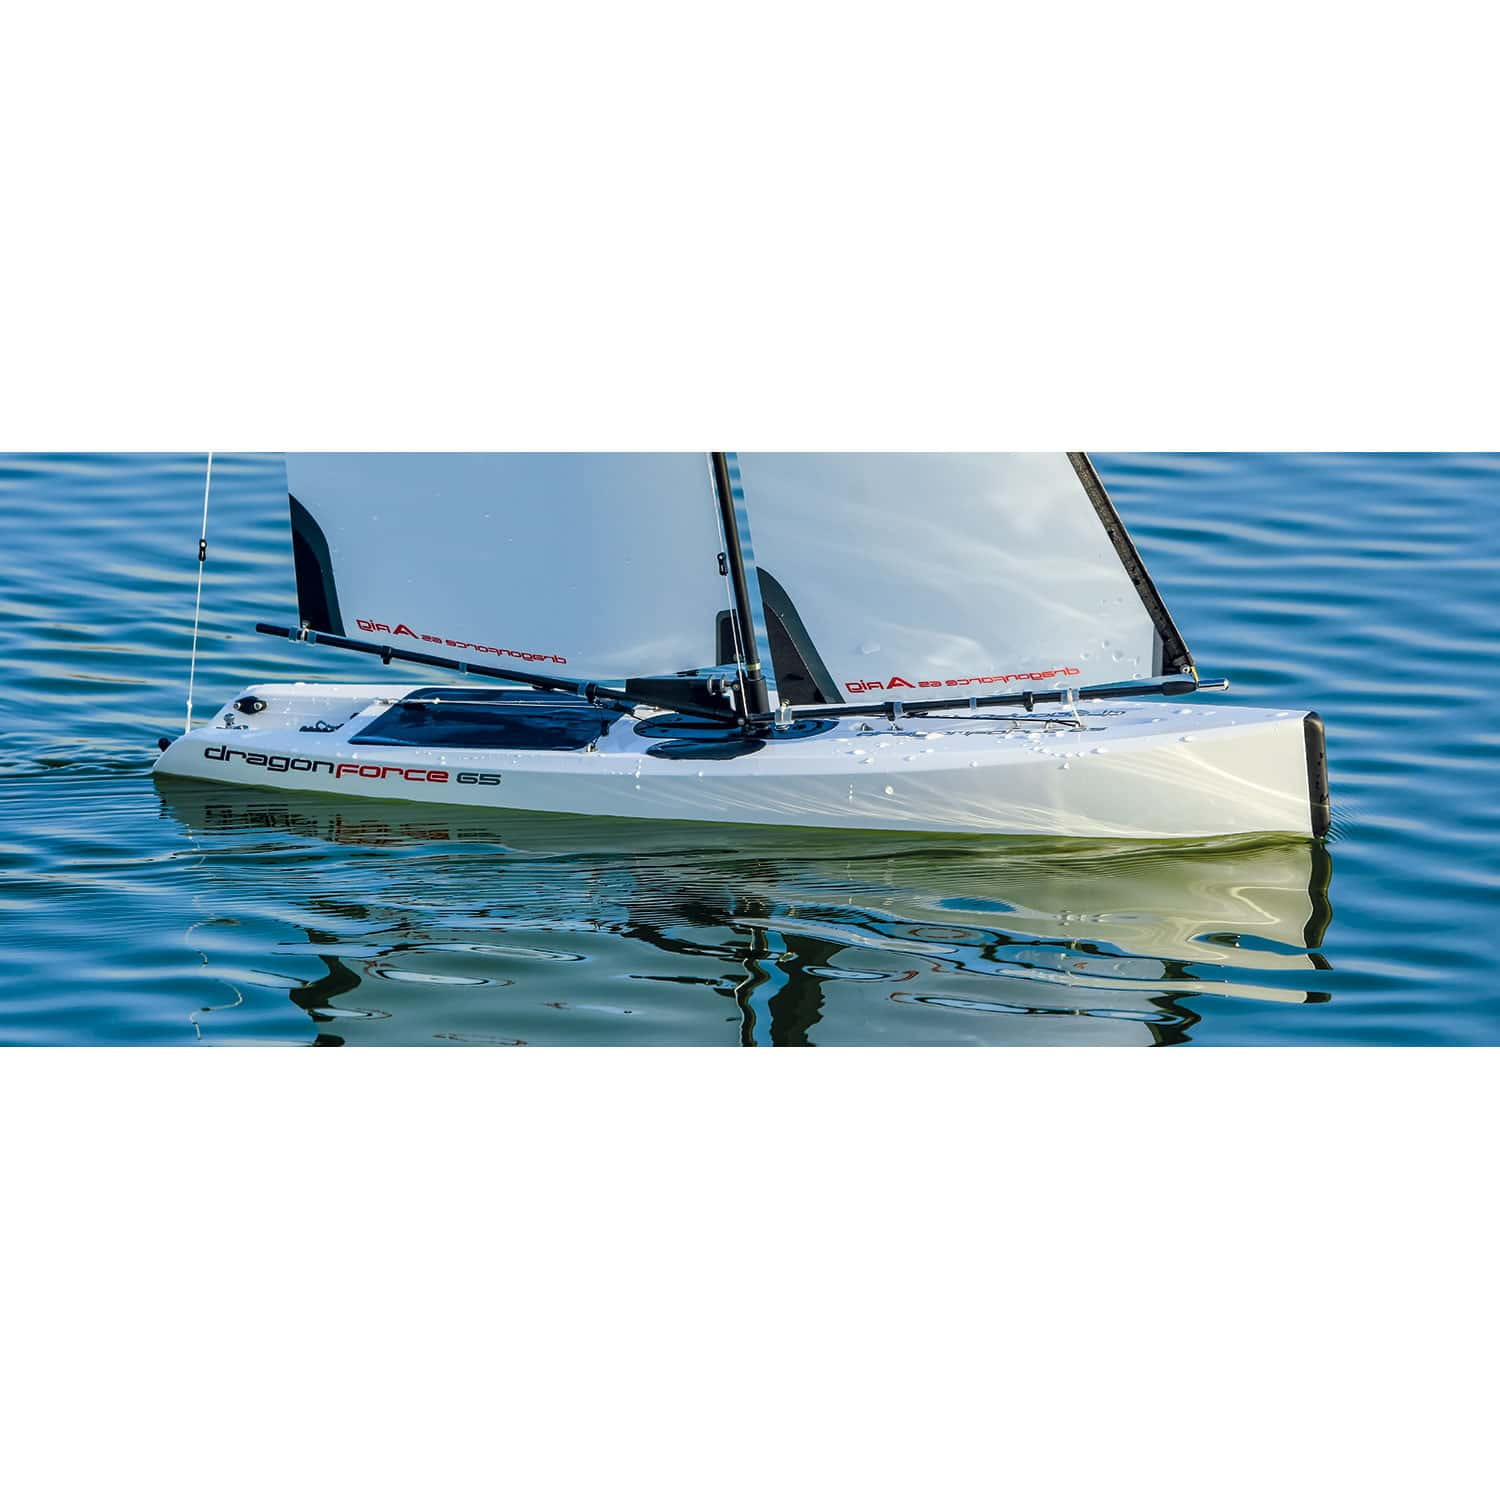 Joysway DragonForce 65 V6 2 4GHz RG65 Class DF65 RC Yacht - RTR (includes  Transmitter & Receiver)